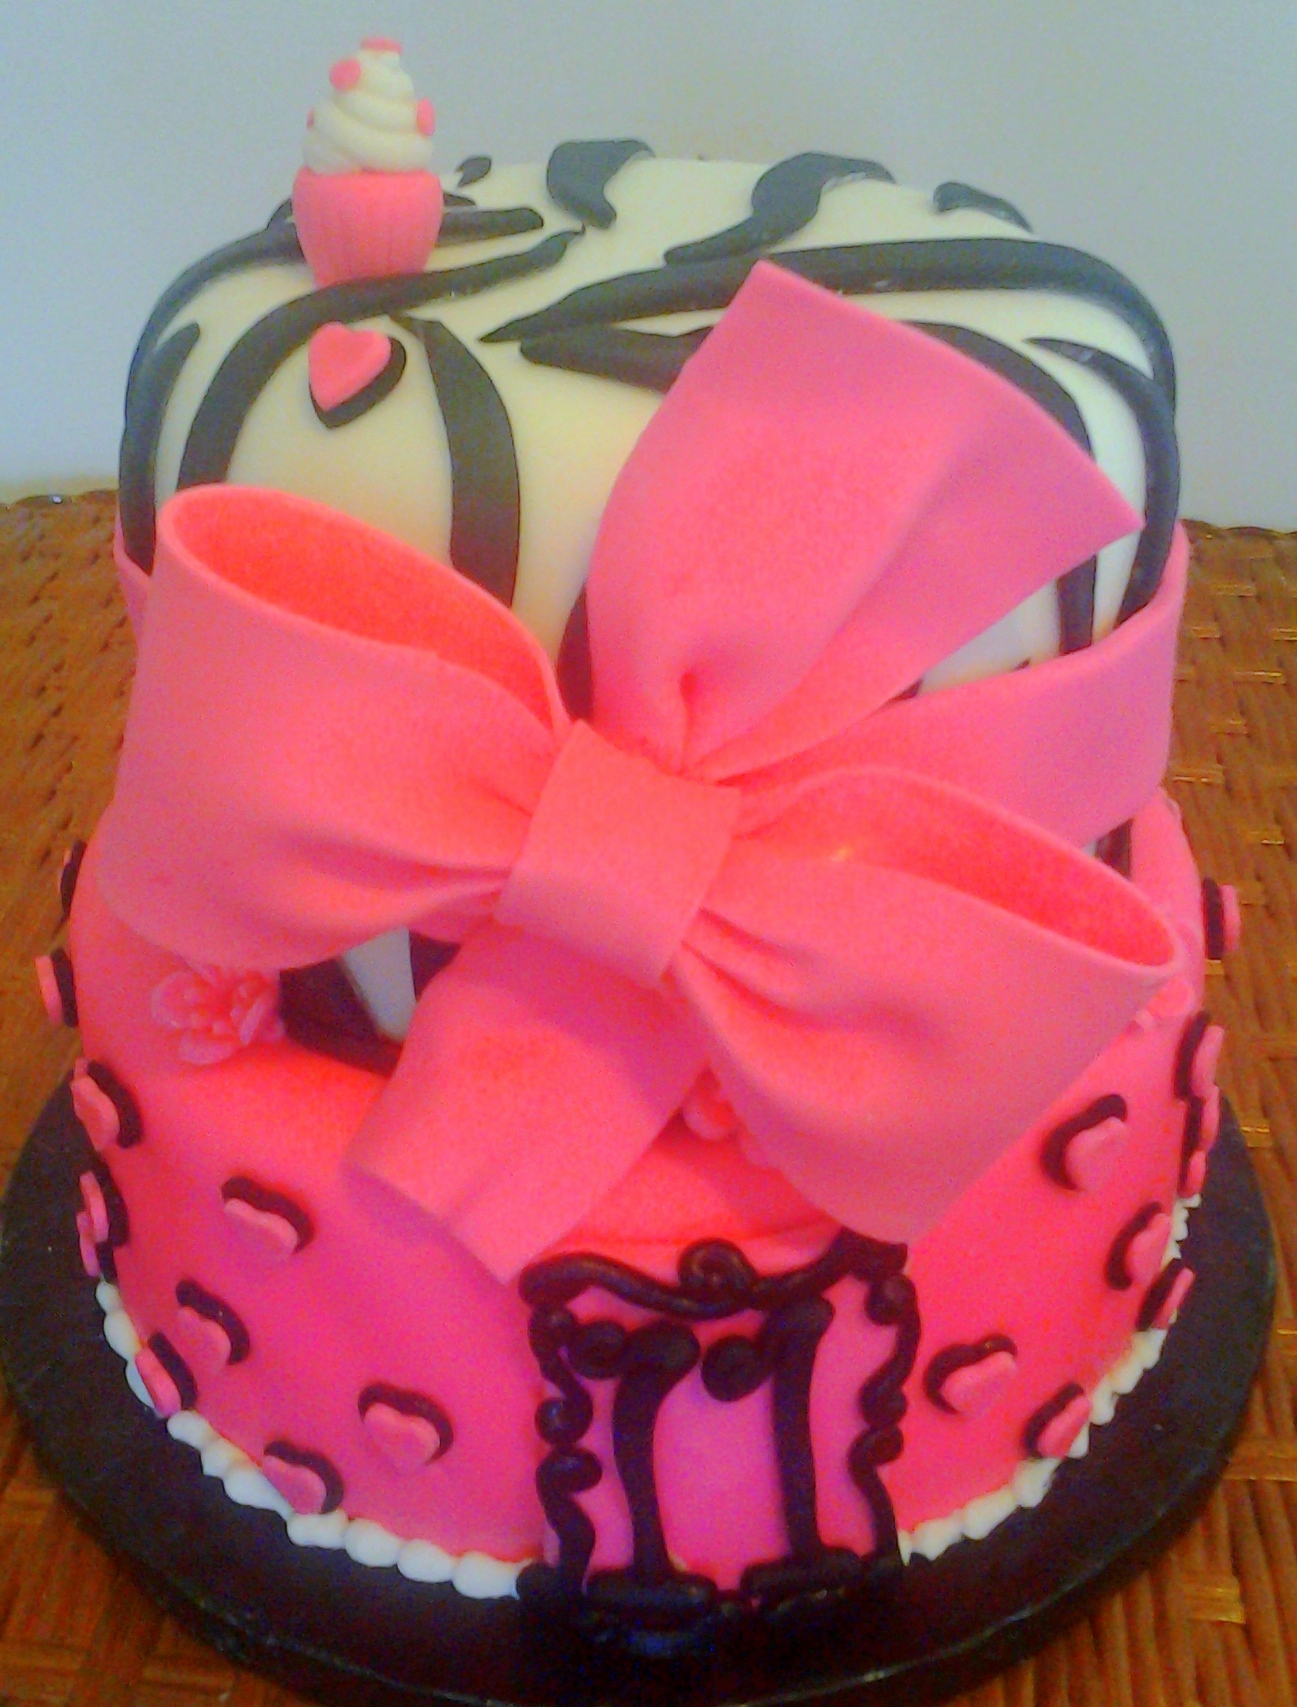 Girl's two tier animal print zebra stripe and hearts pink and black fondant modern 11th birthday cake design with edible bow.jpg